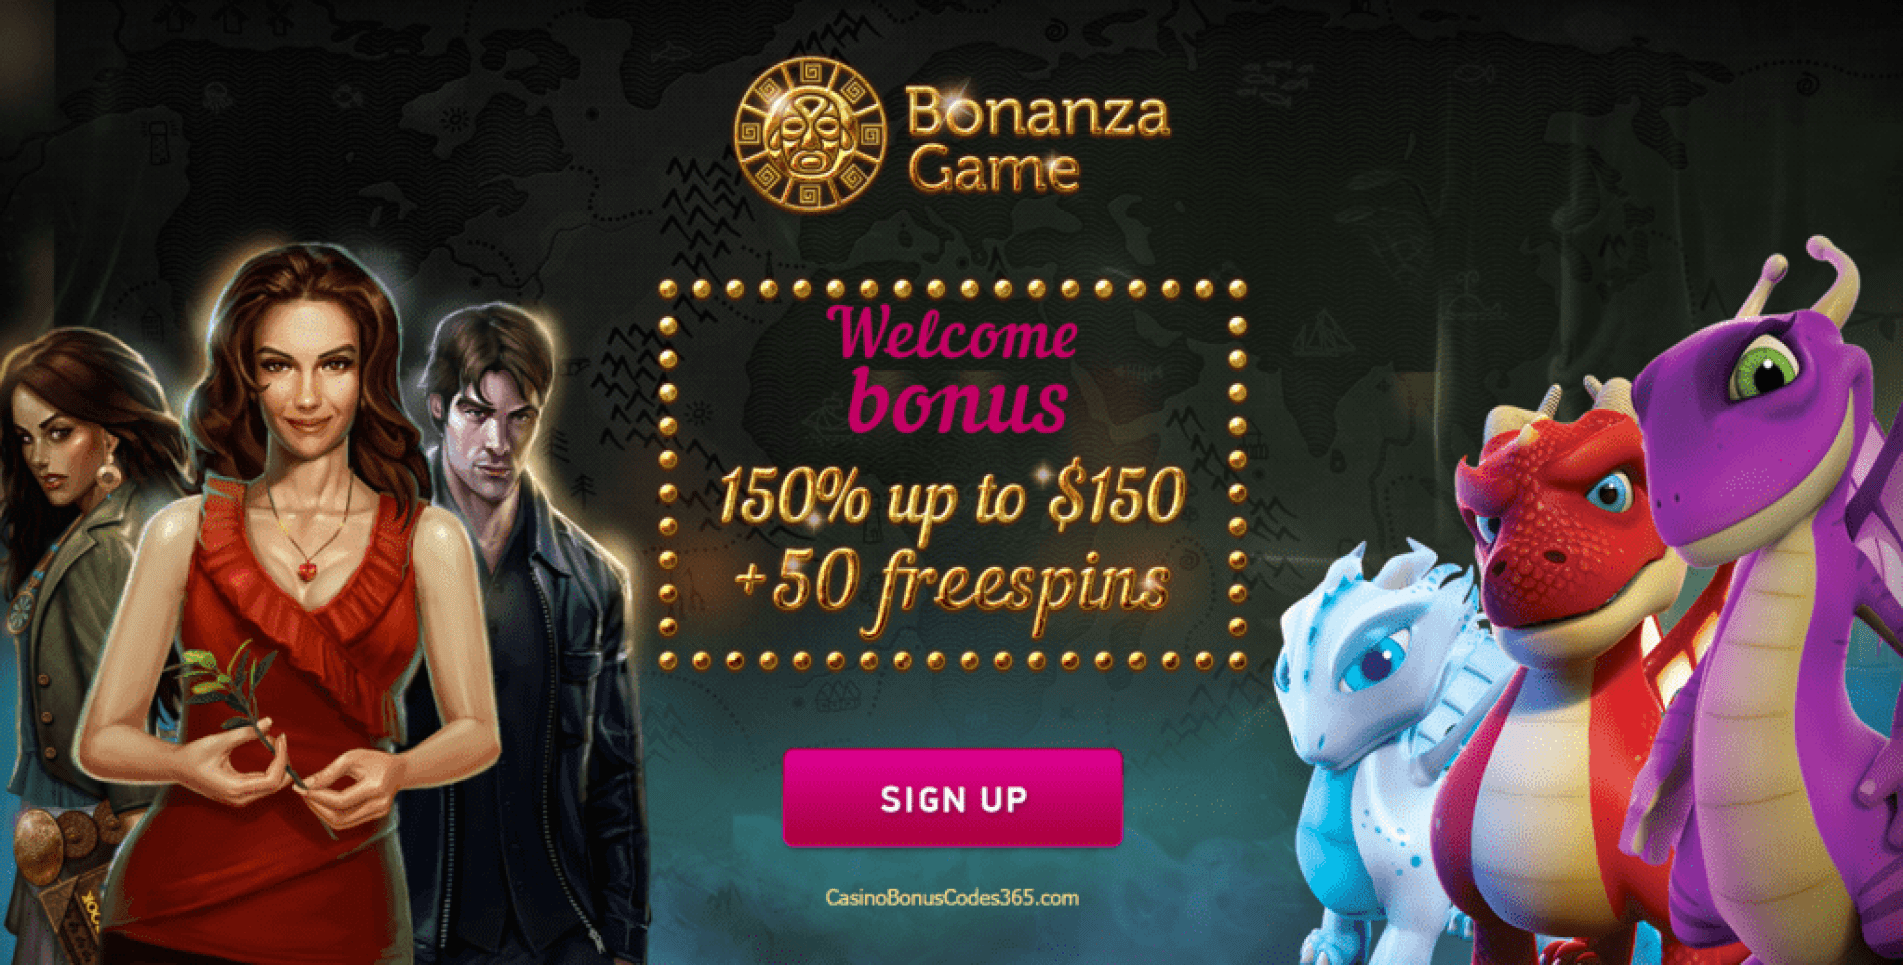 Bonanza Game 150% up to $150 plus 50 FREE Spins